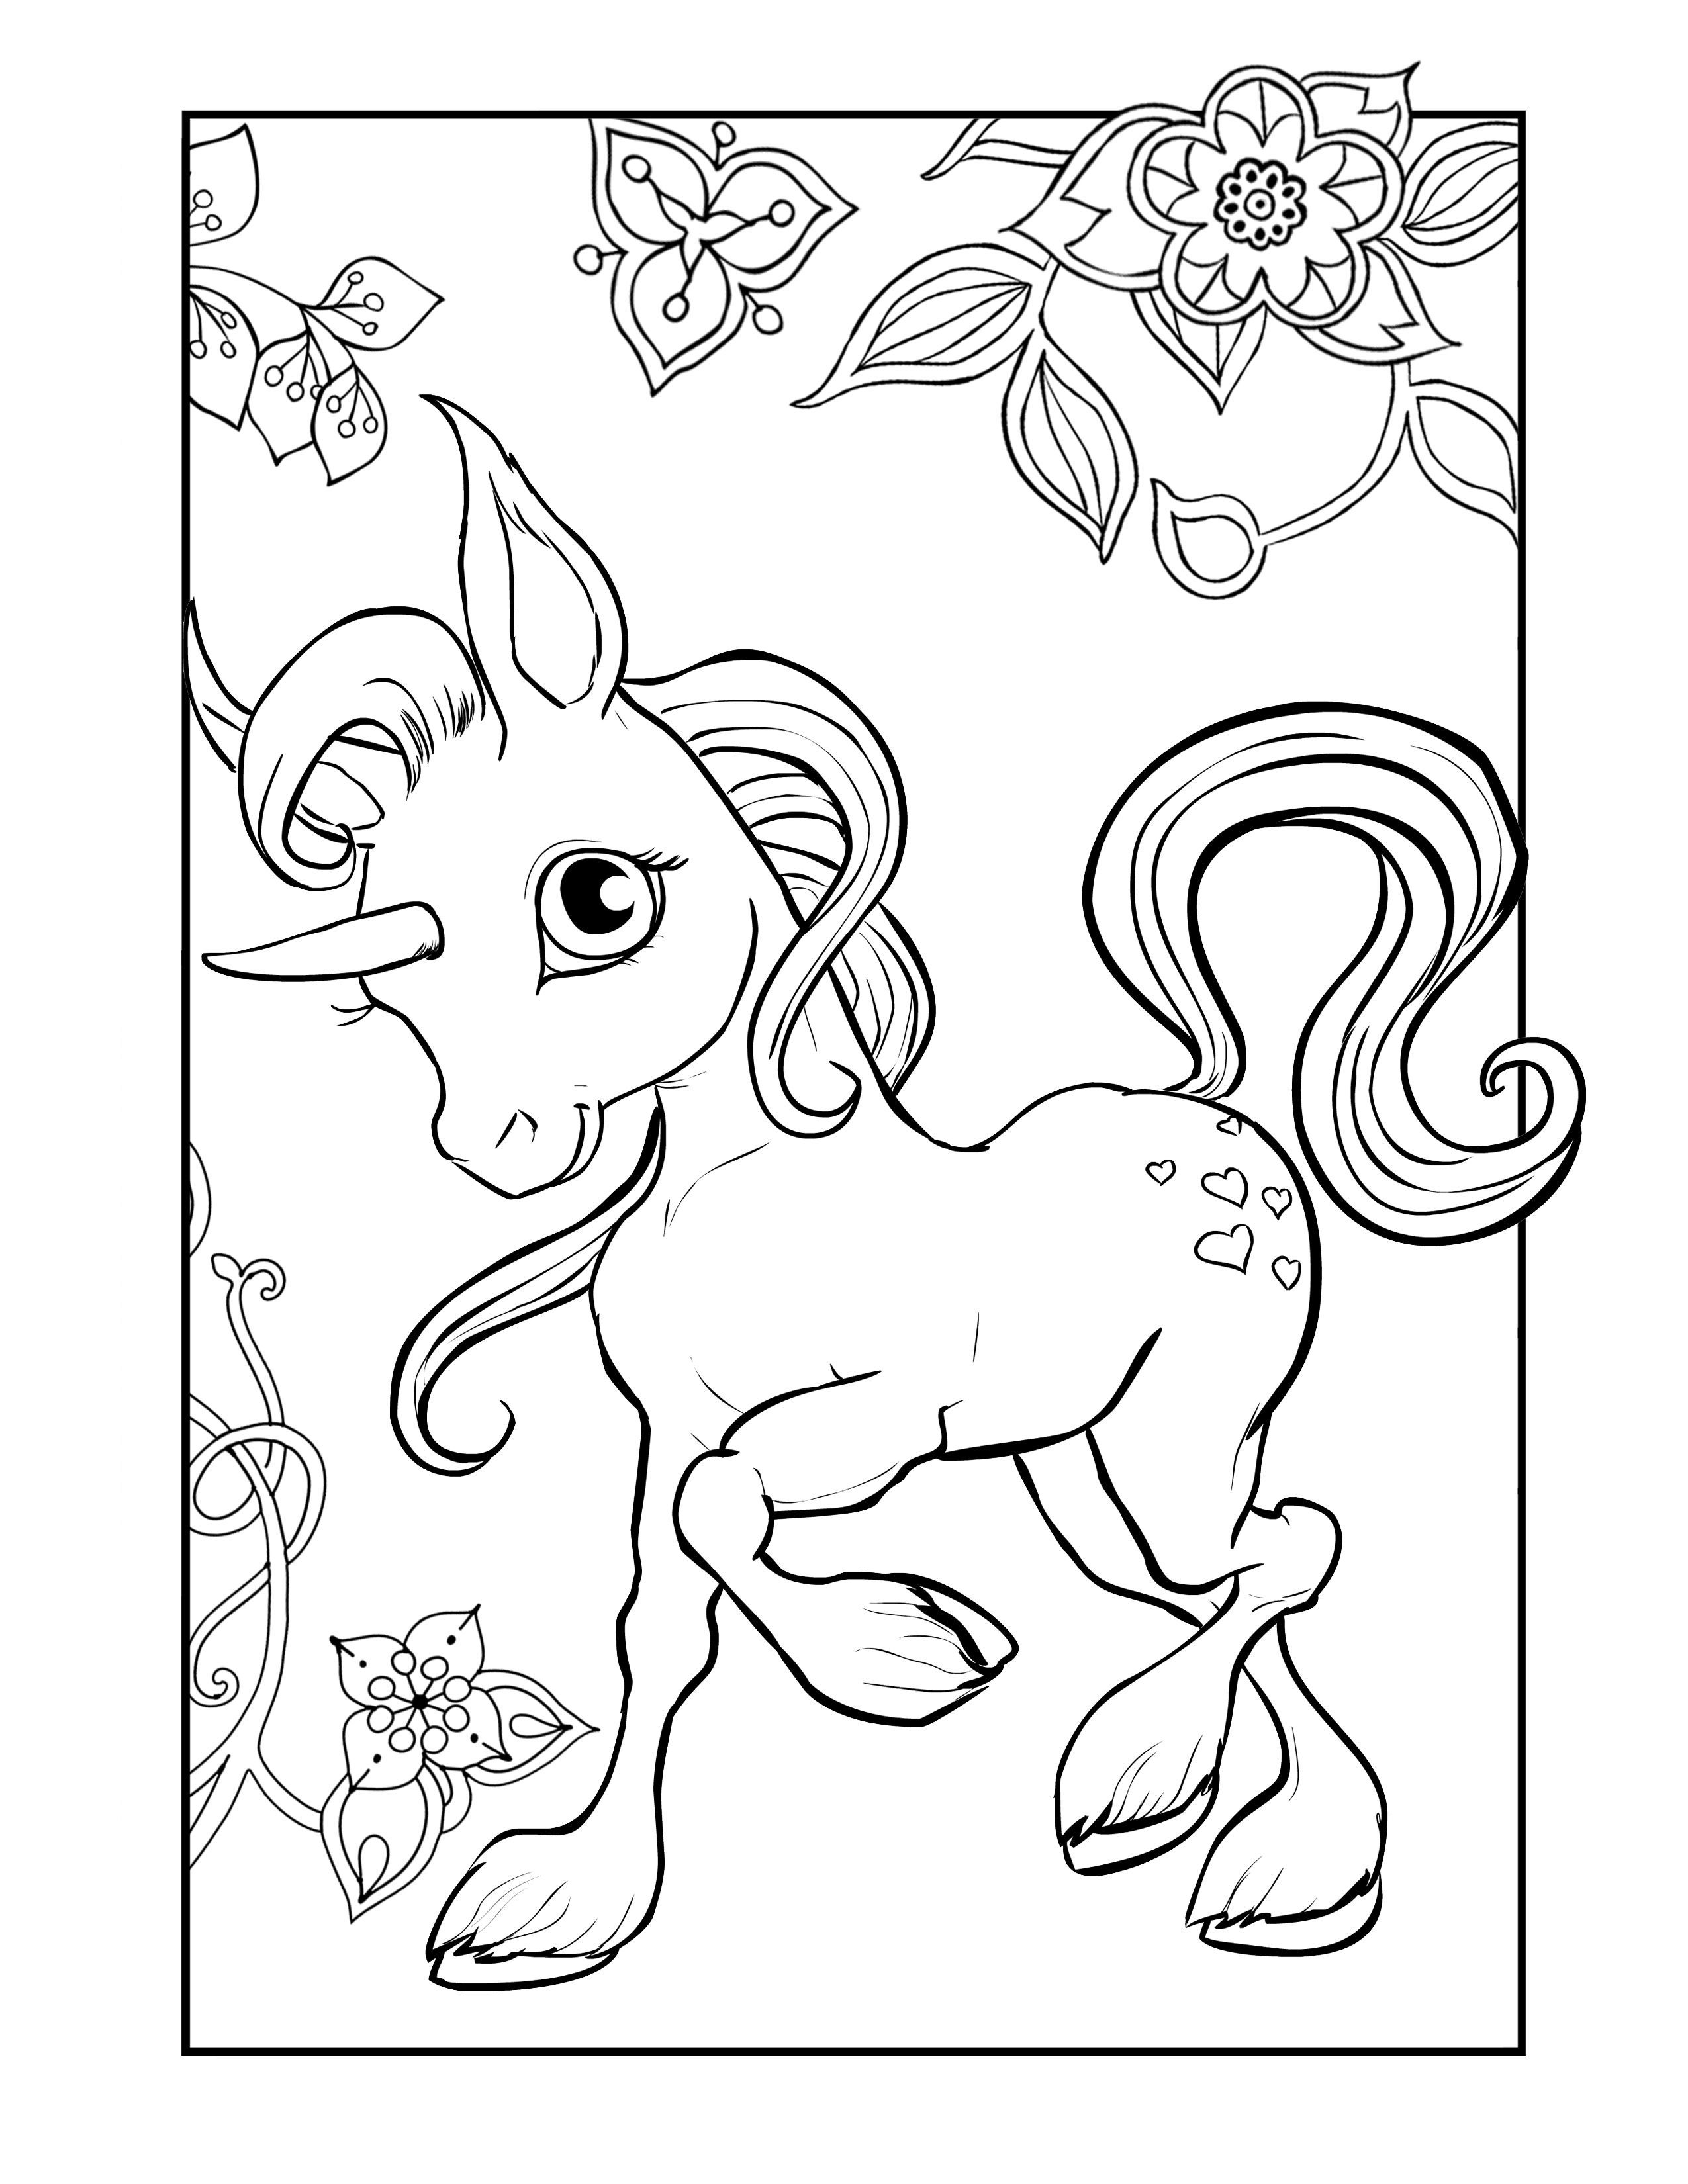 Coloring Unicorn Pdf Coloring Pages Allow Kids To Accompany